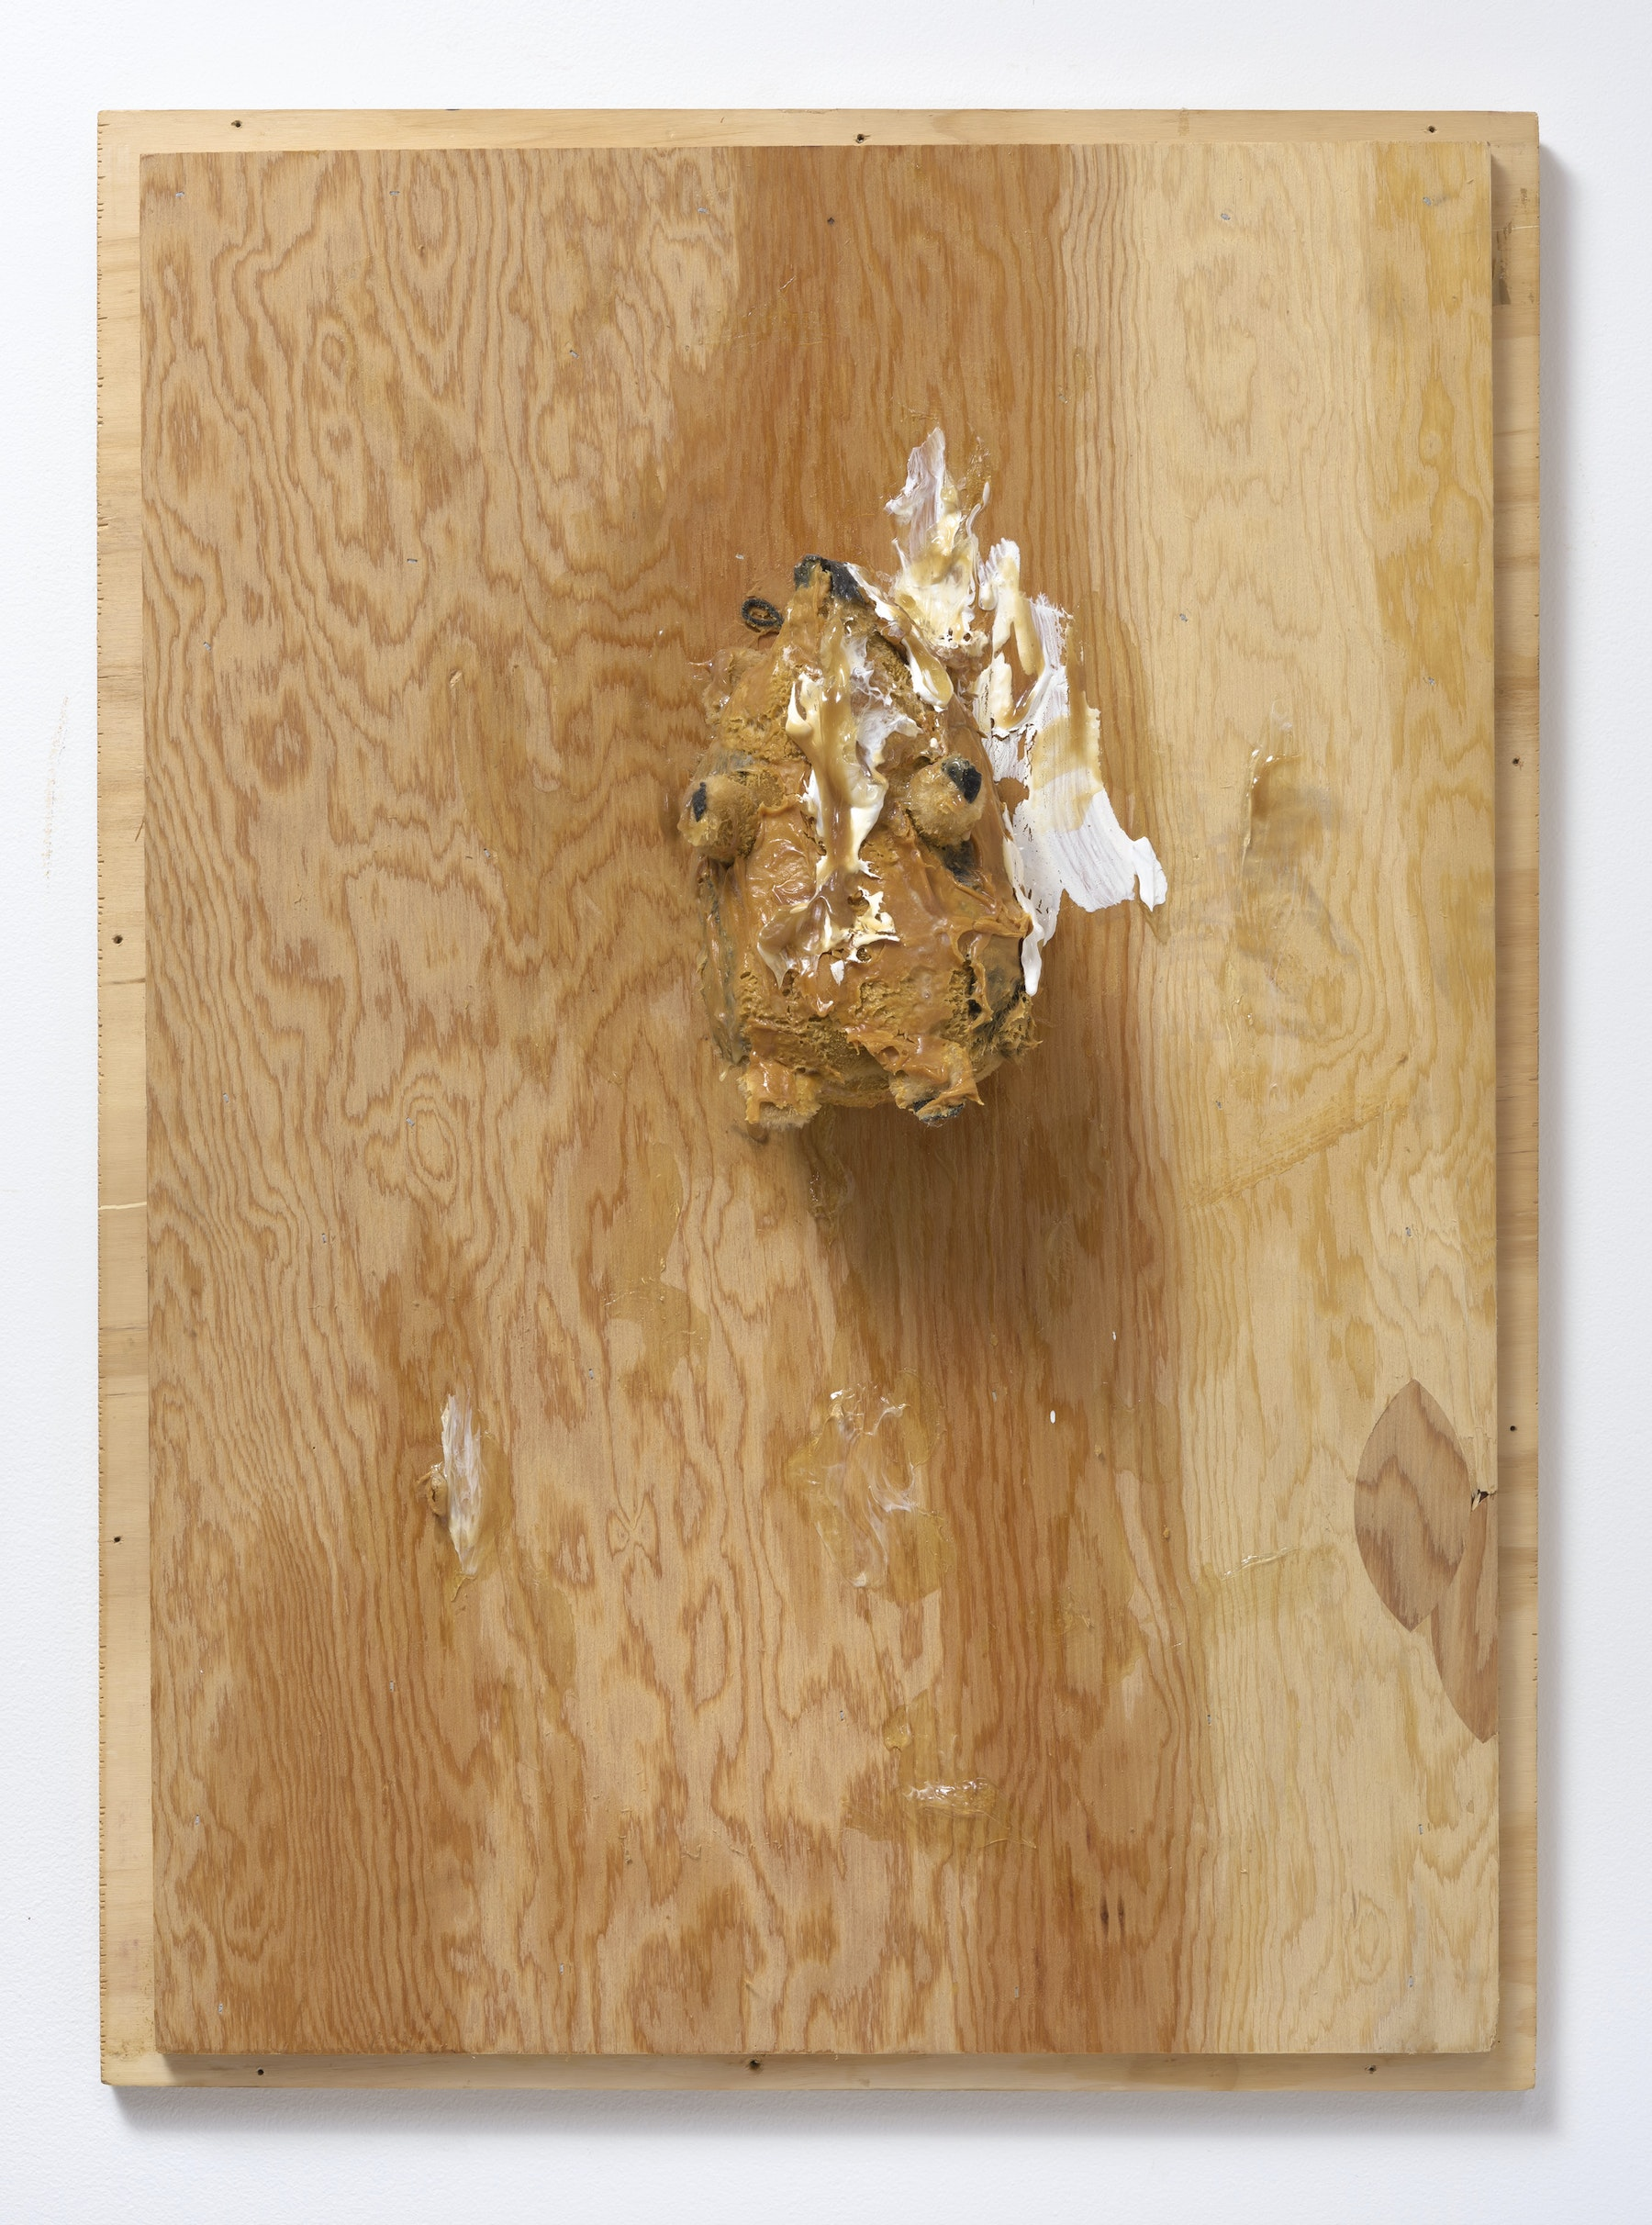 "Pope.L ""Trophy (Hedgehog),"" 2007 Wood, stuffed animal, oil paint, acrylic paint, acrylic medium, peanut butter, screws 32"" H x 23.50"" W x 7"" D (81.28 cm H x 59.69 cm W x 17.78 cm D) Inventory #POP137 Courtesy of the Artist and Vielmetter Los Angeles. © Pope.L Photo credit: Robert Wedemeyer"